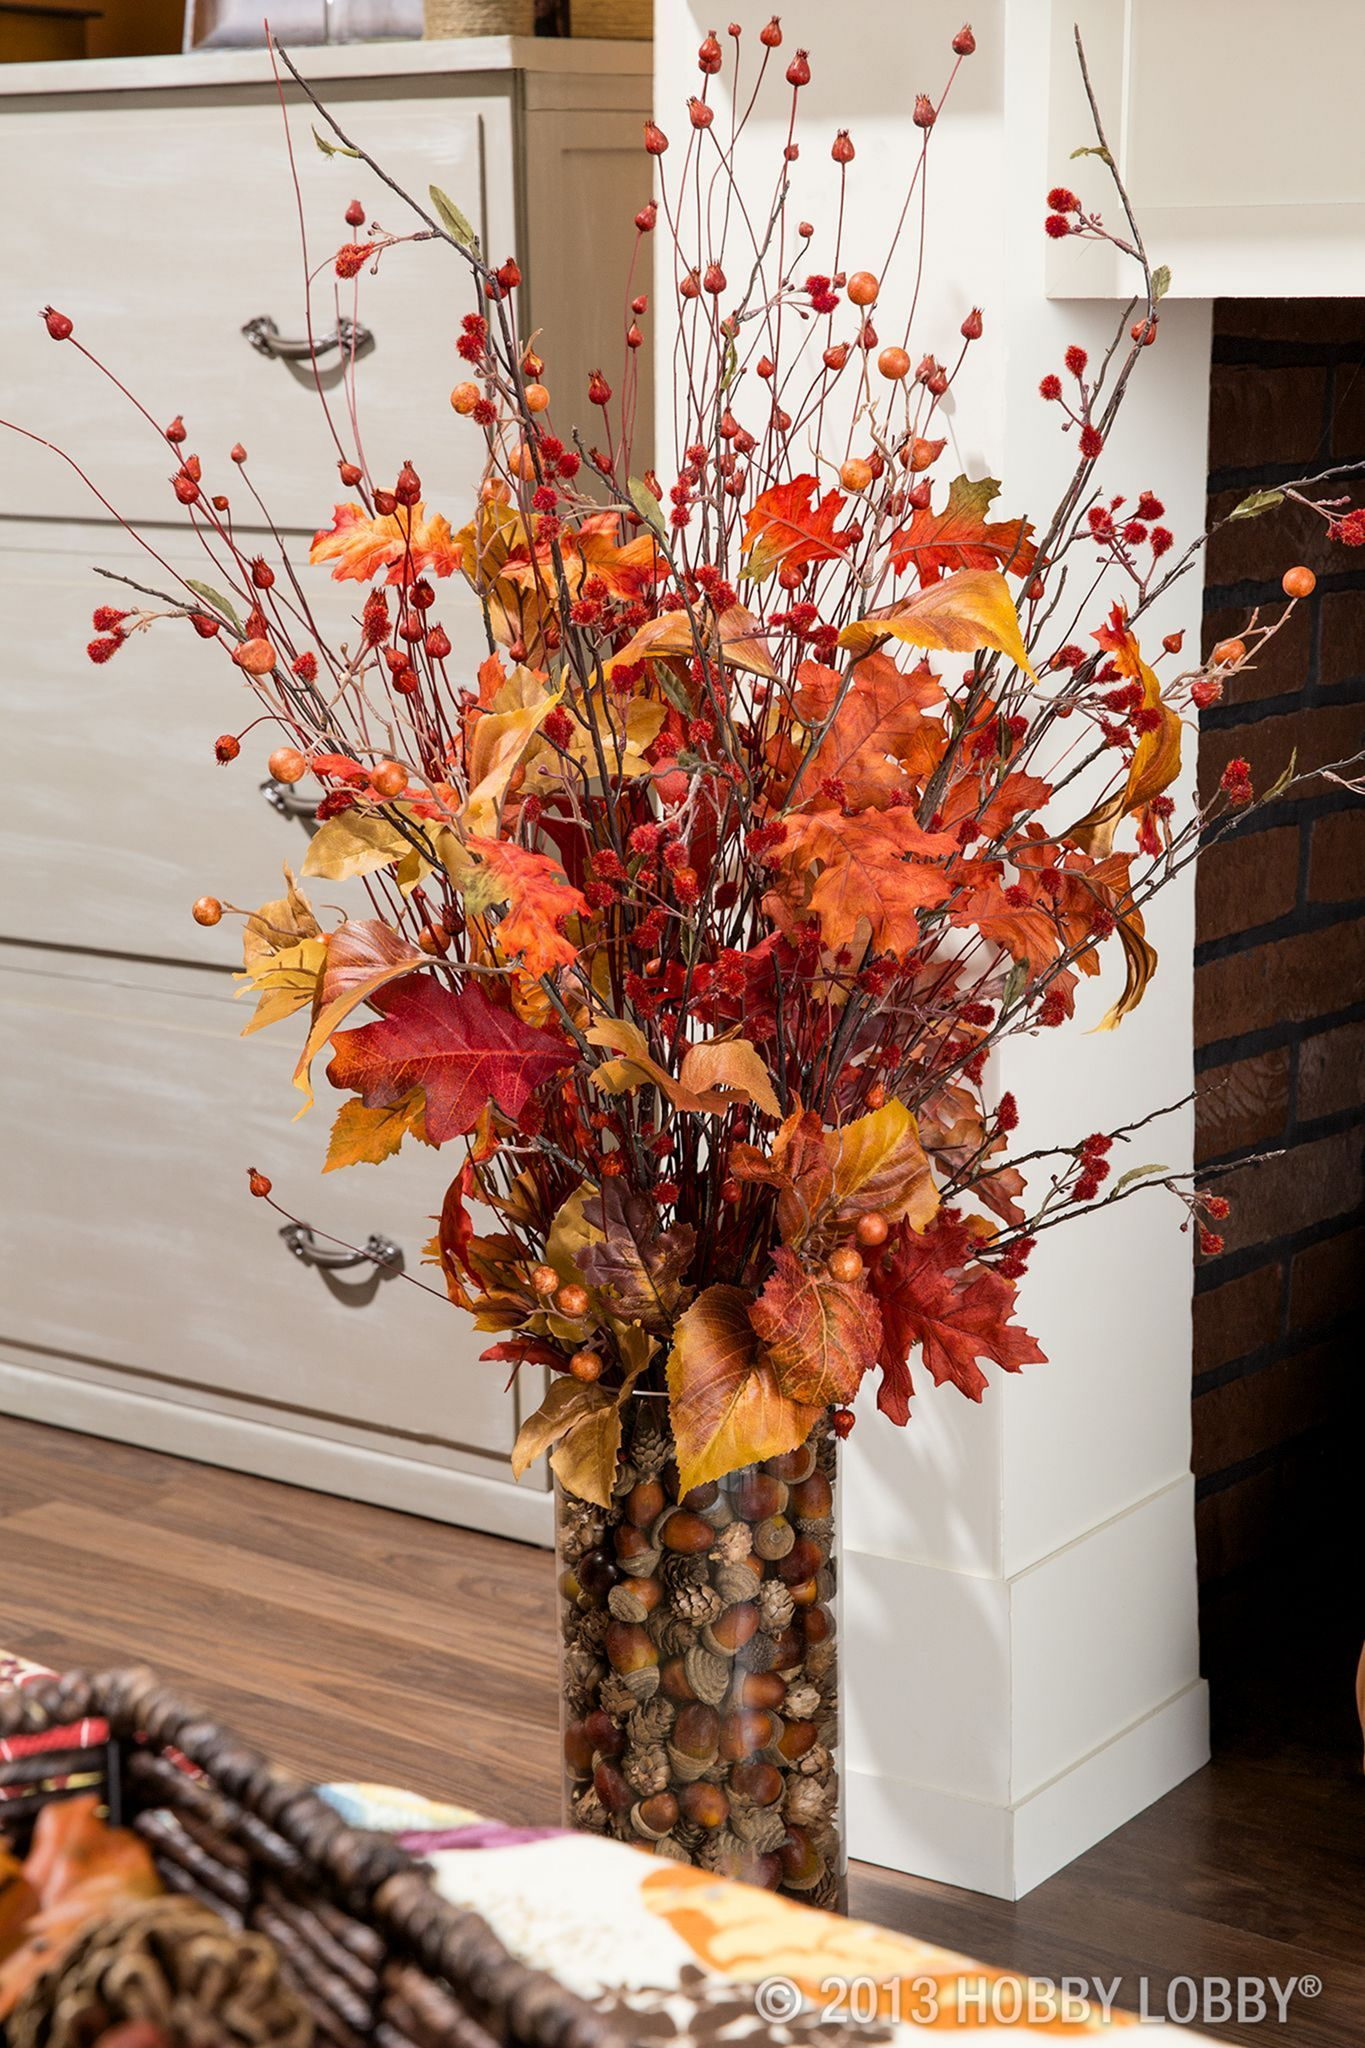 Top 15 Wonderful Diy Fall Centerpieces Ideas To Decor Your Room Table Easily With Images Fall Decor Diy Fall Centerpiece Fall Floral Arrangements